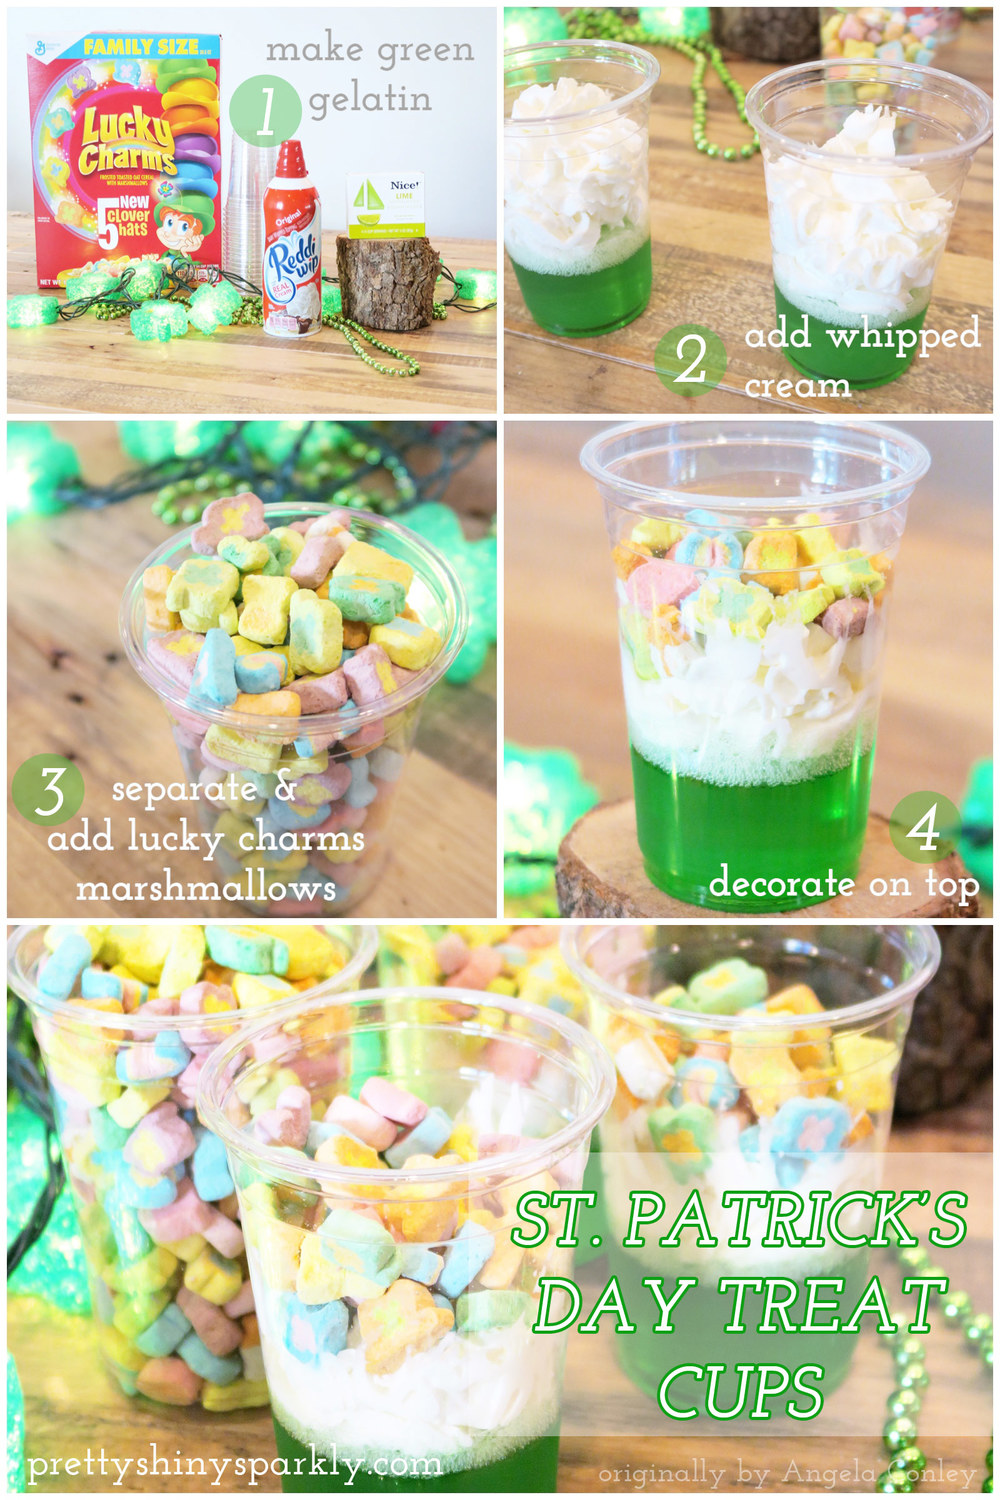 st-patrick's-day-treat-cups-text